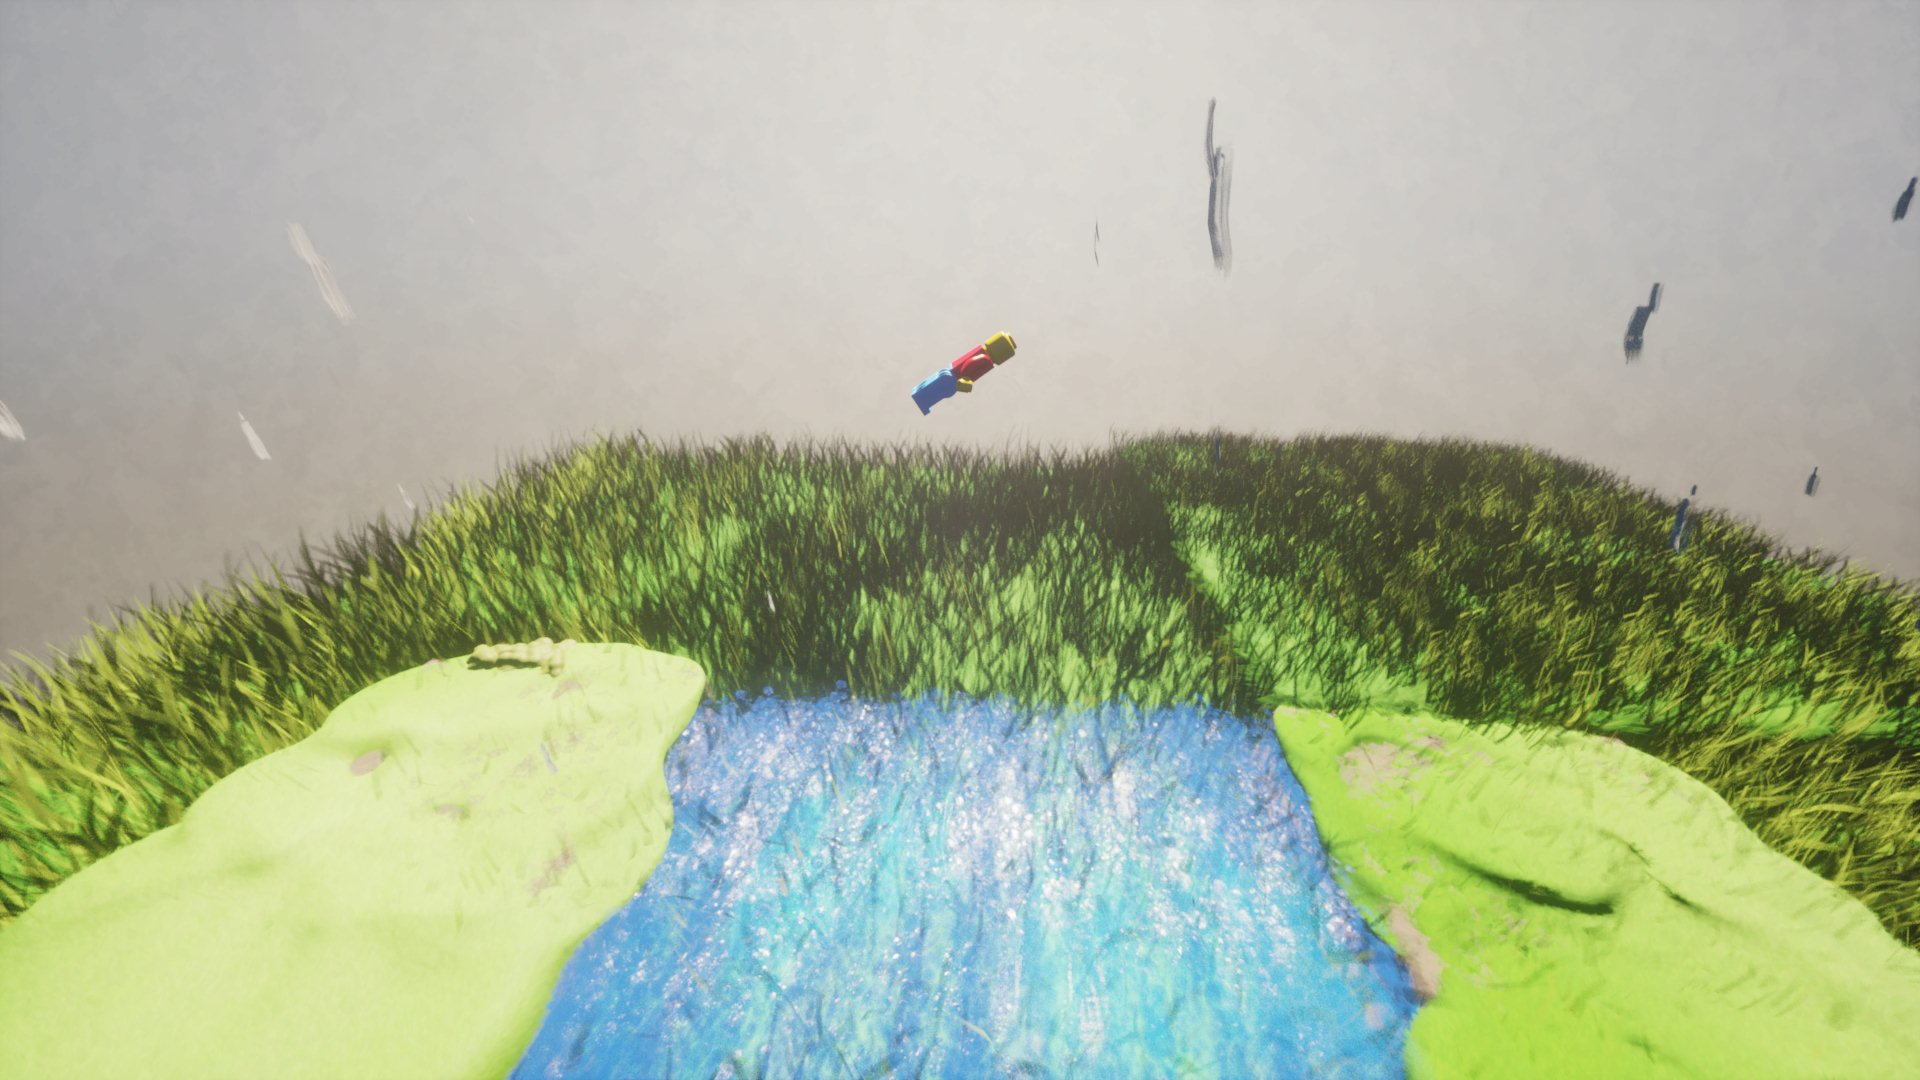 A screenshot taken in Dreams. 2 of 3.